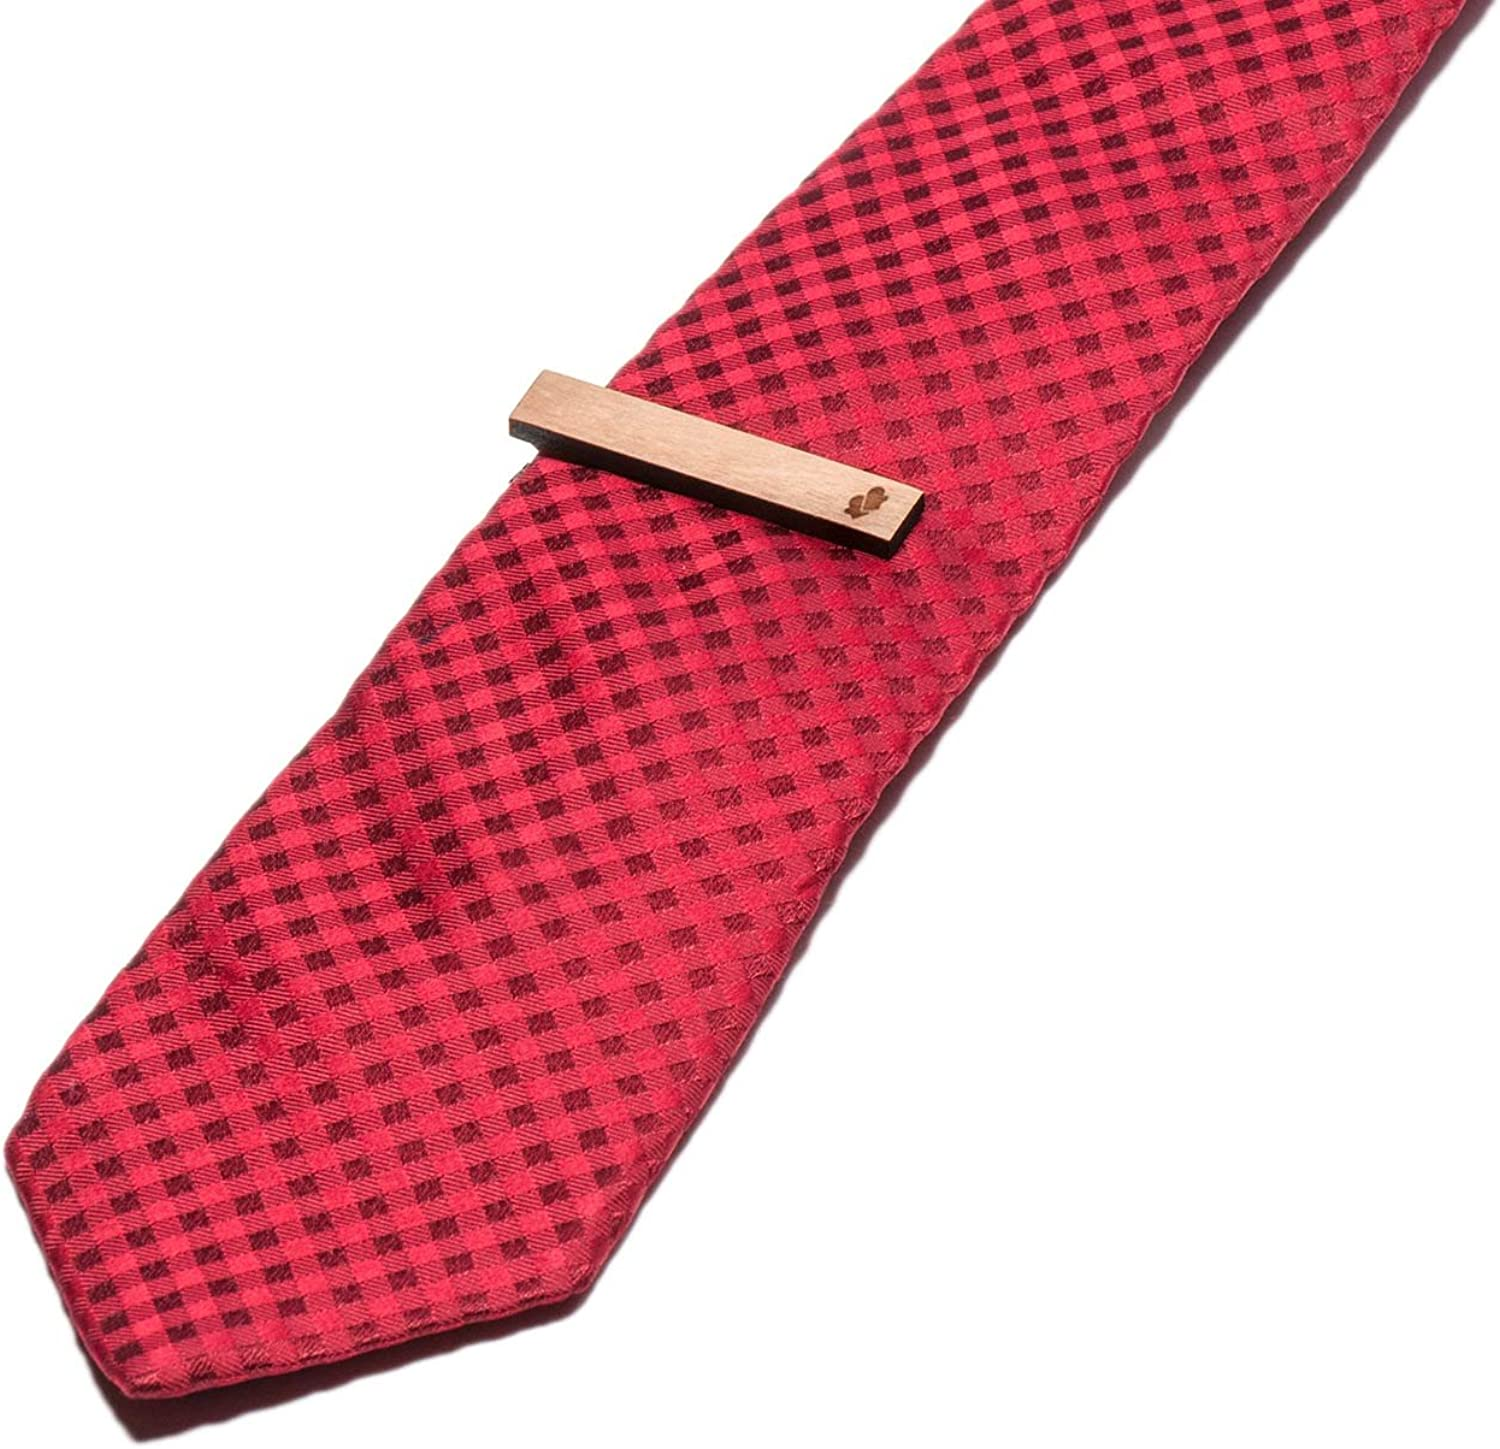 Wooden Accessories Company Wooden Tie Clips with Laser Engraved Mitts Design Cherry Wood Tie Bar Engraved in The USA